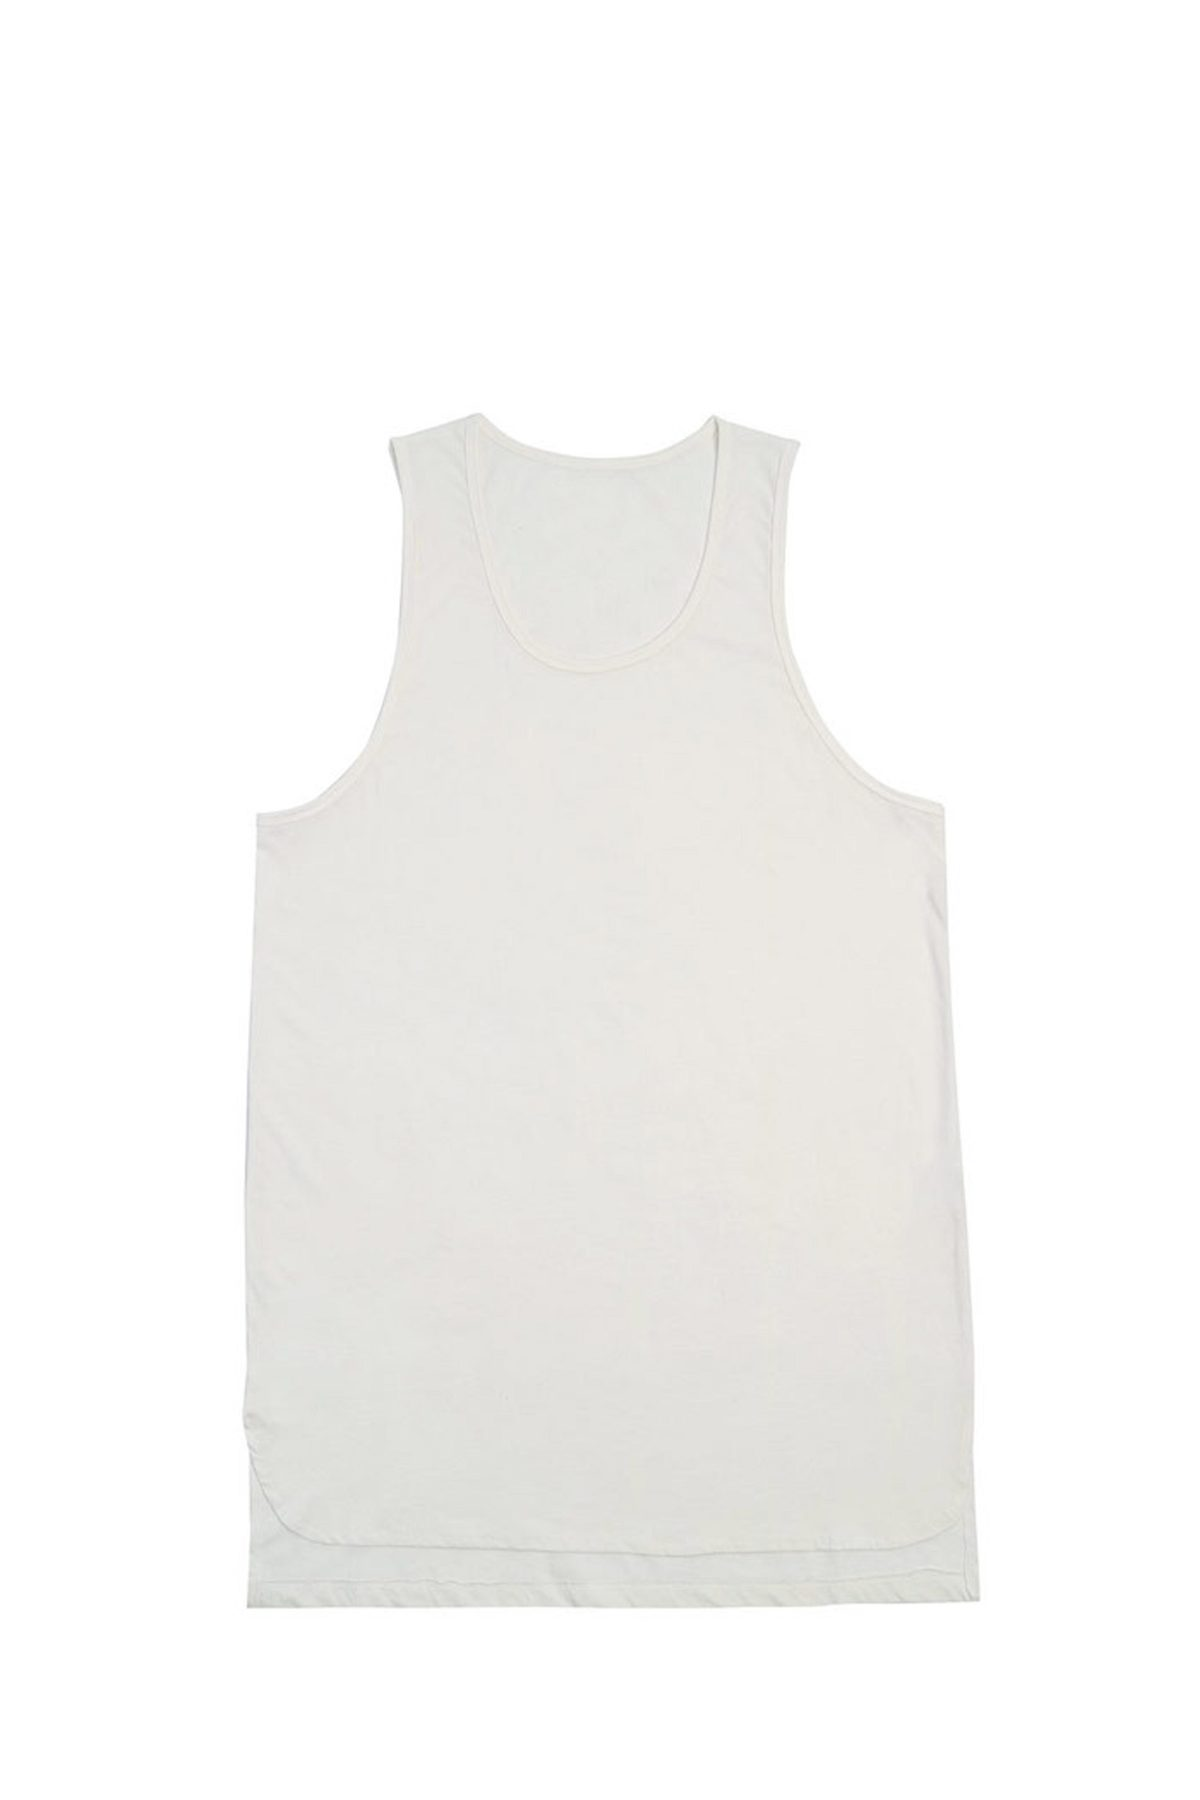 IVORY LAYERED SLEEVELESS